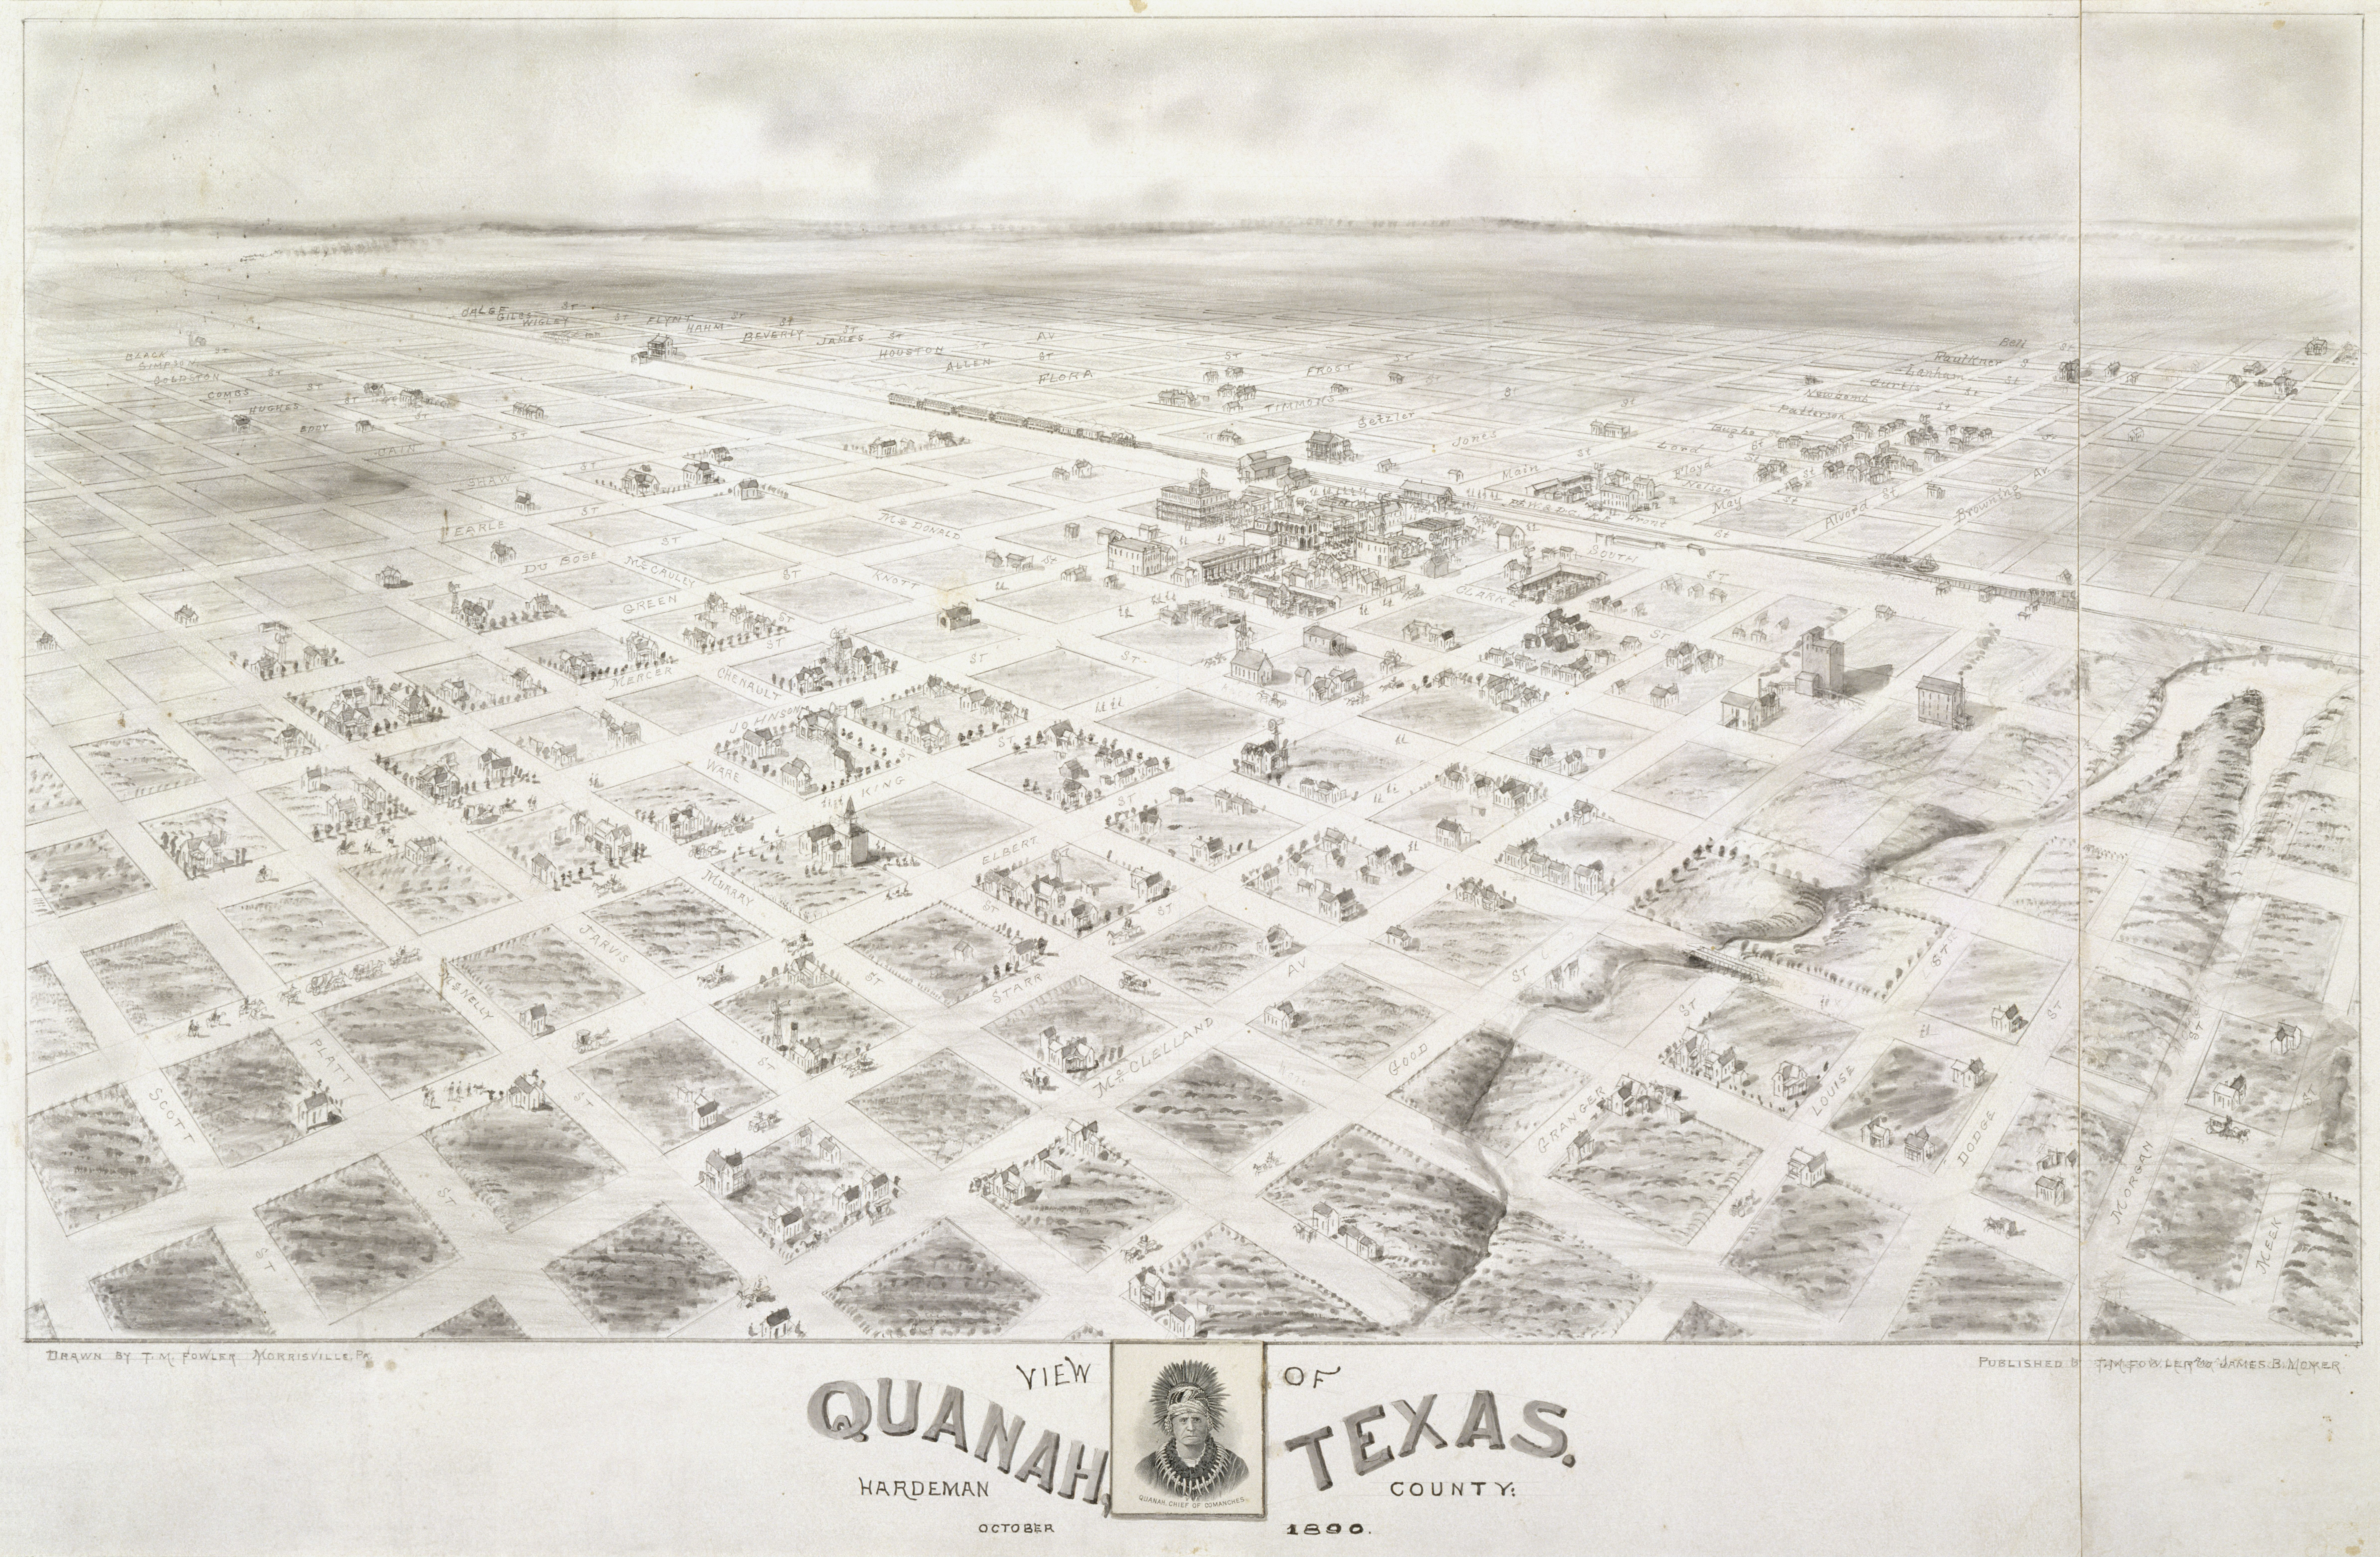 File:Quanah, Texas in 1890 - drawing.jpg - Wikimedia Commons on